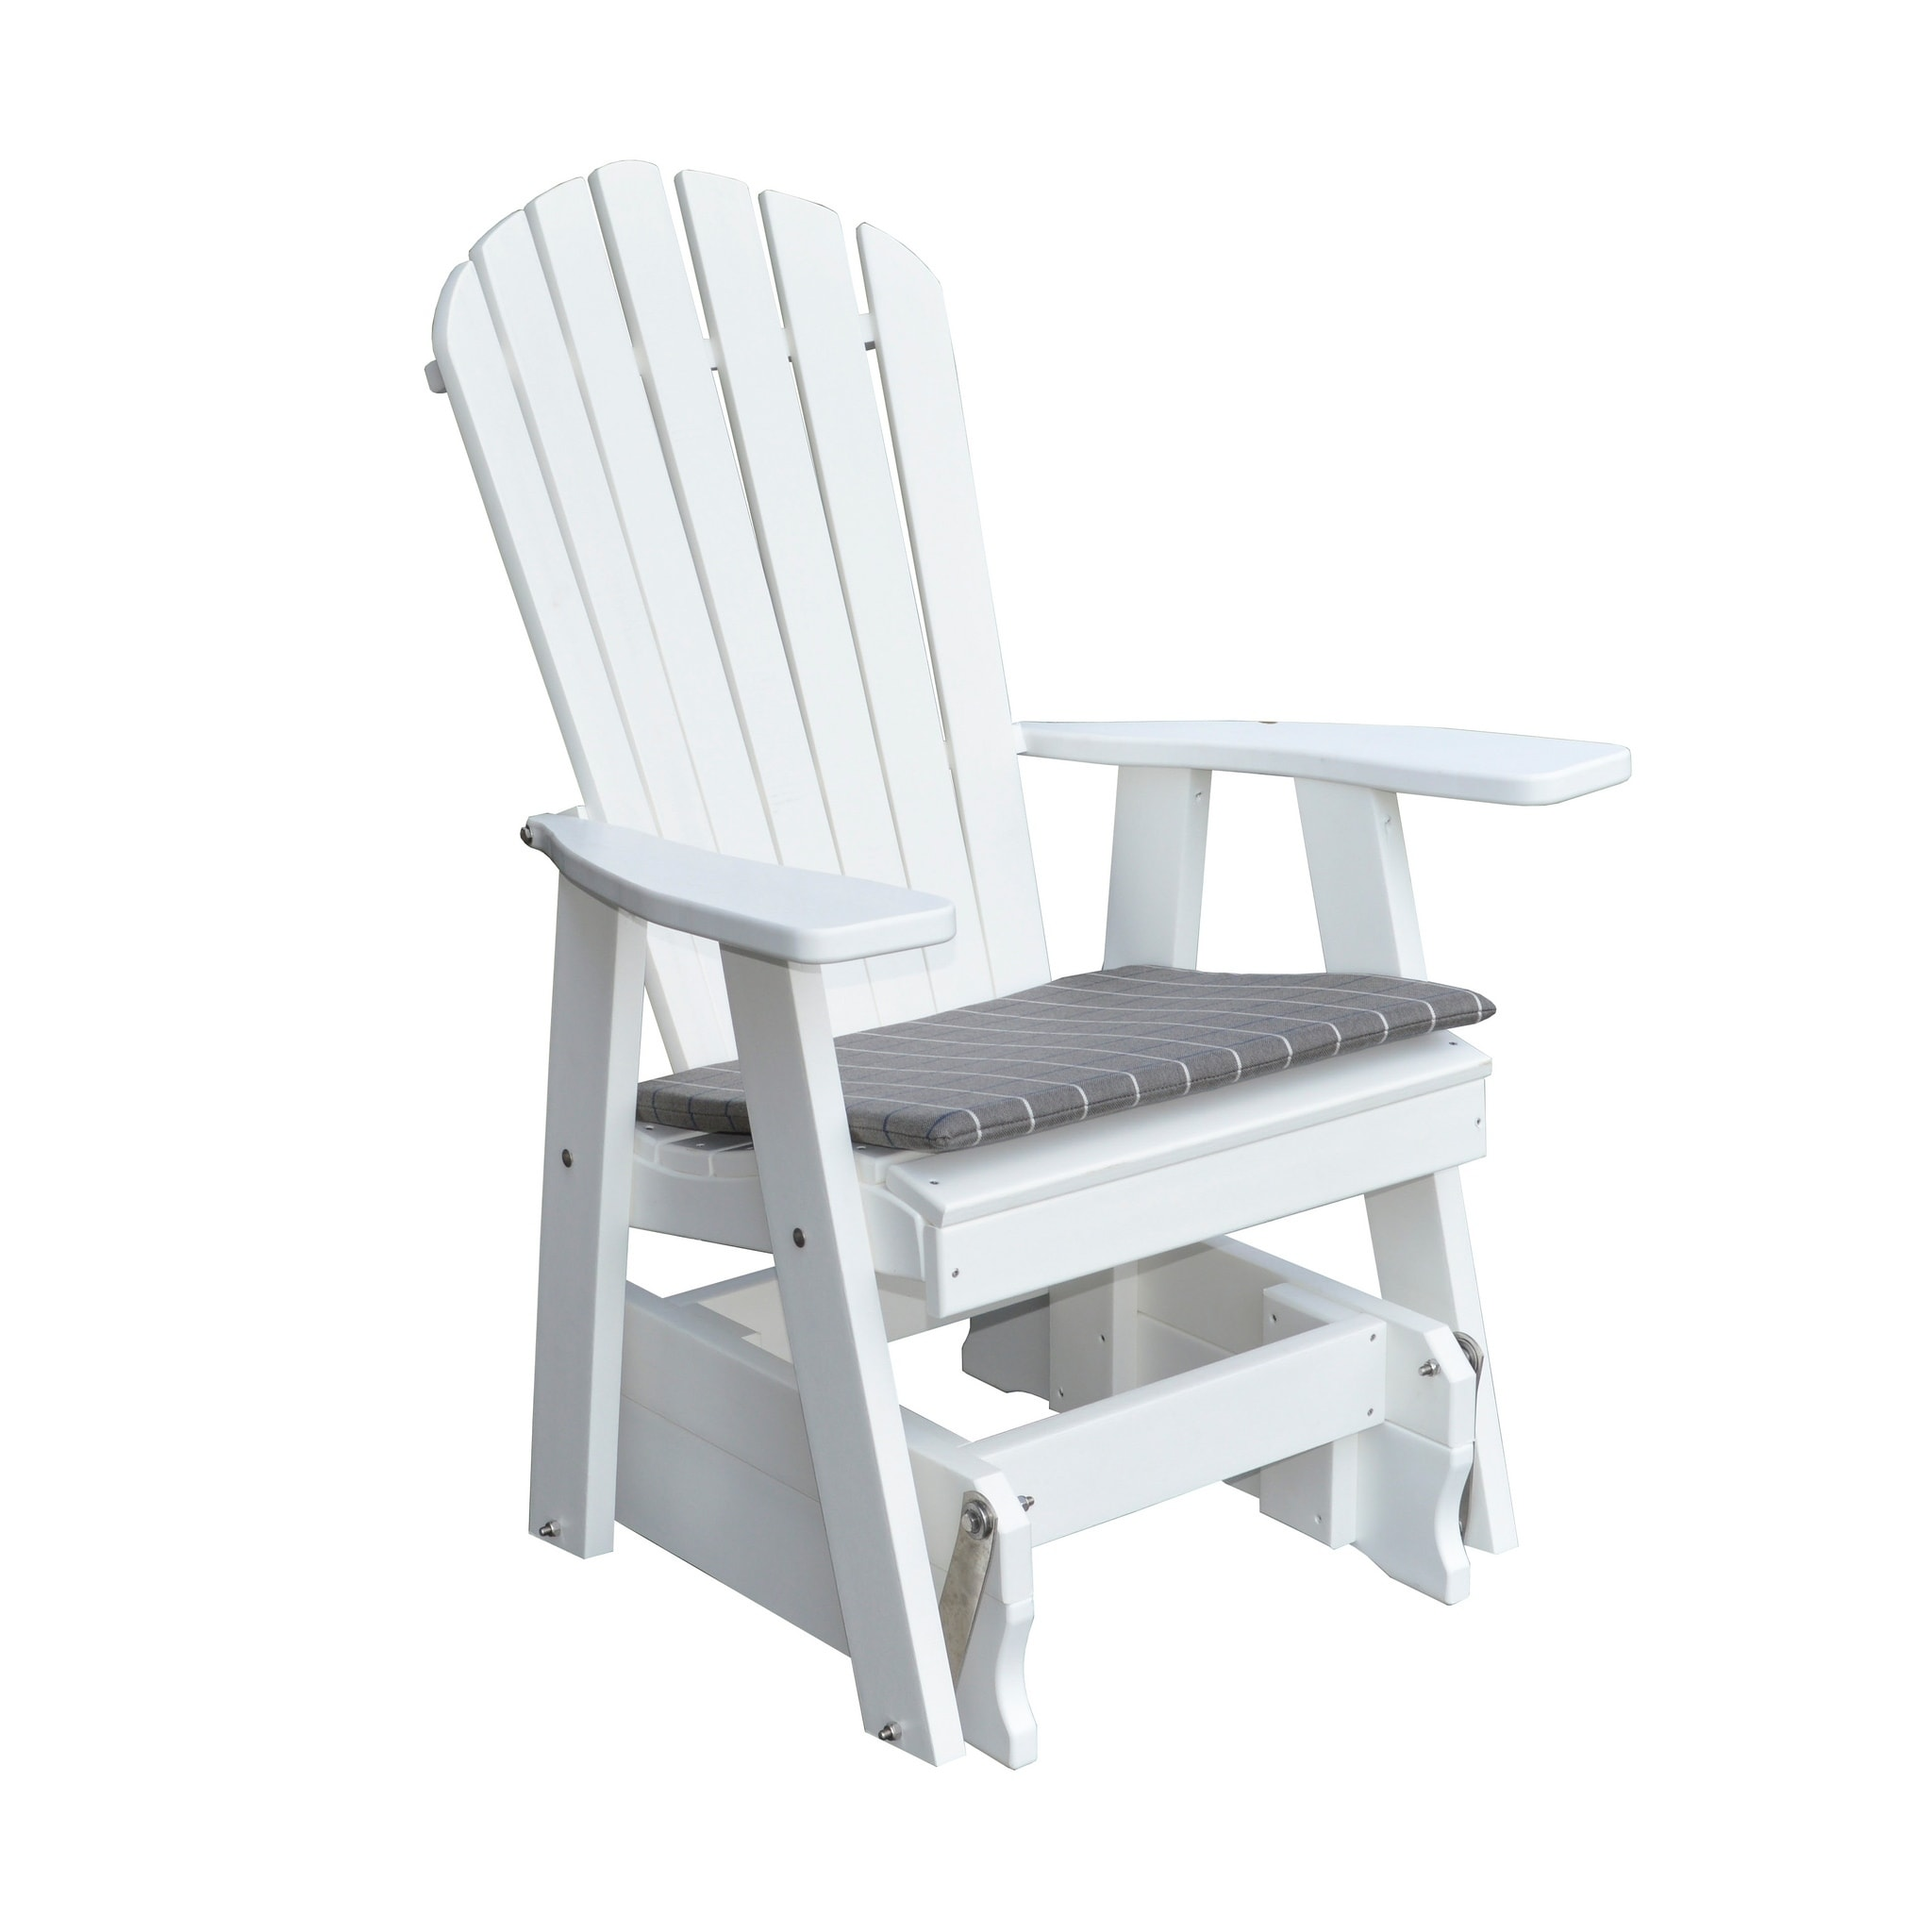 Outdoor Adirondack Style Gliding Chair Recycled Plastic